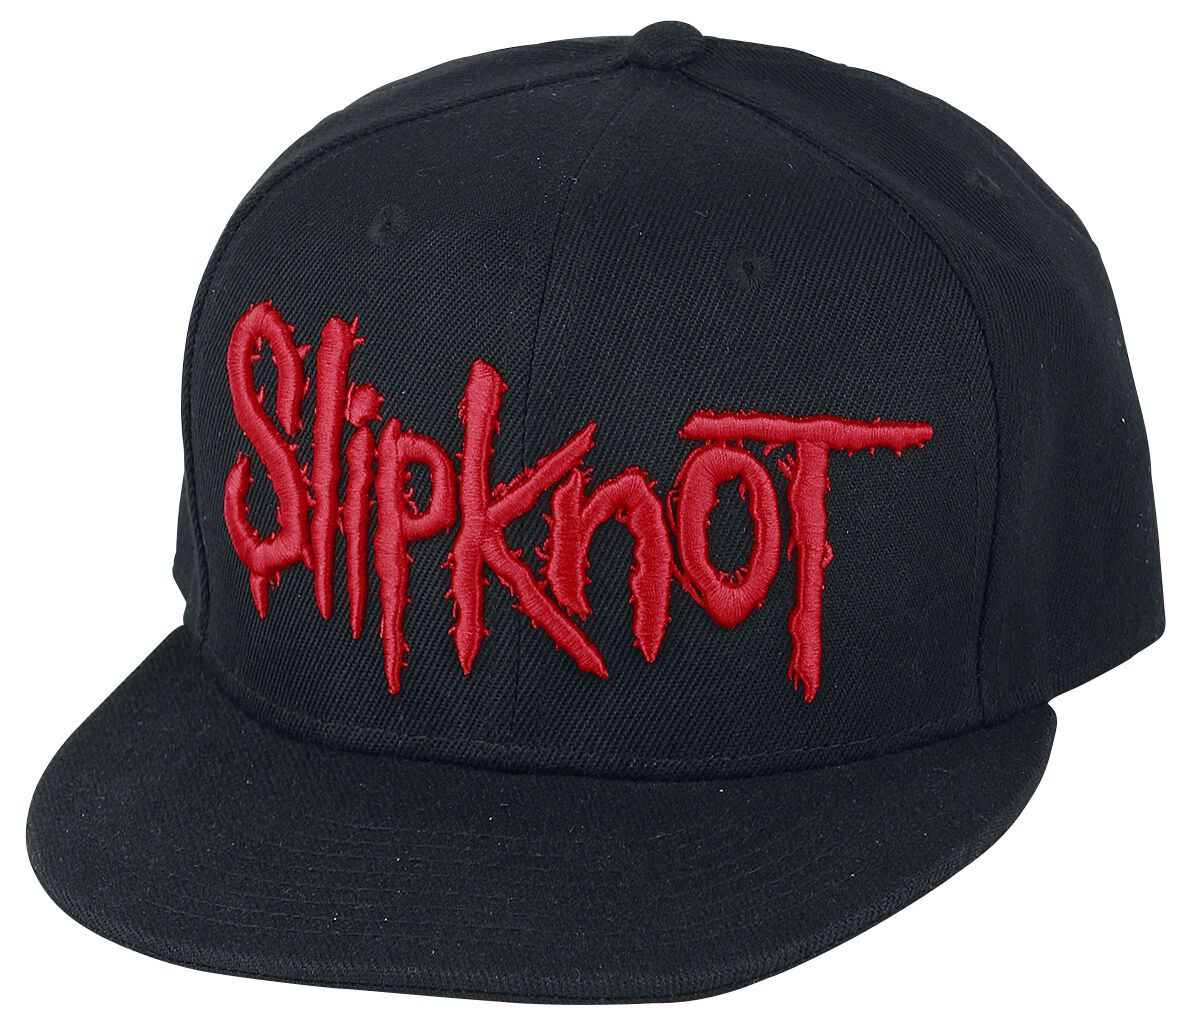 Image of   Slipknot Logo Snapback Cap sort